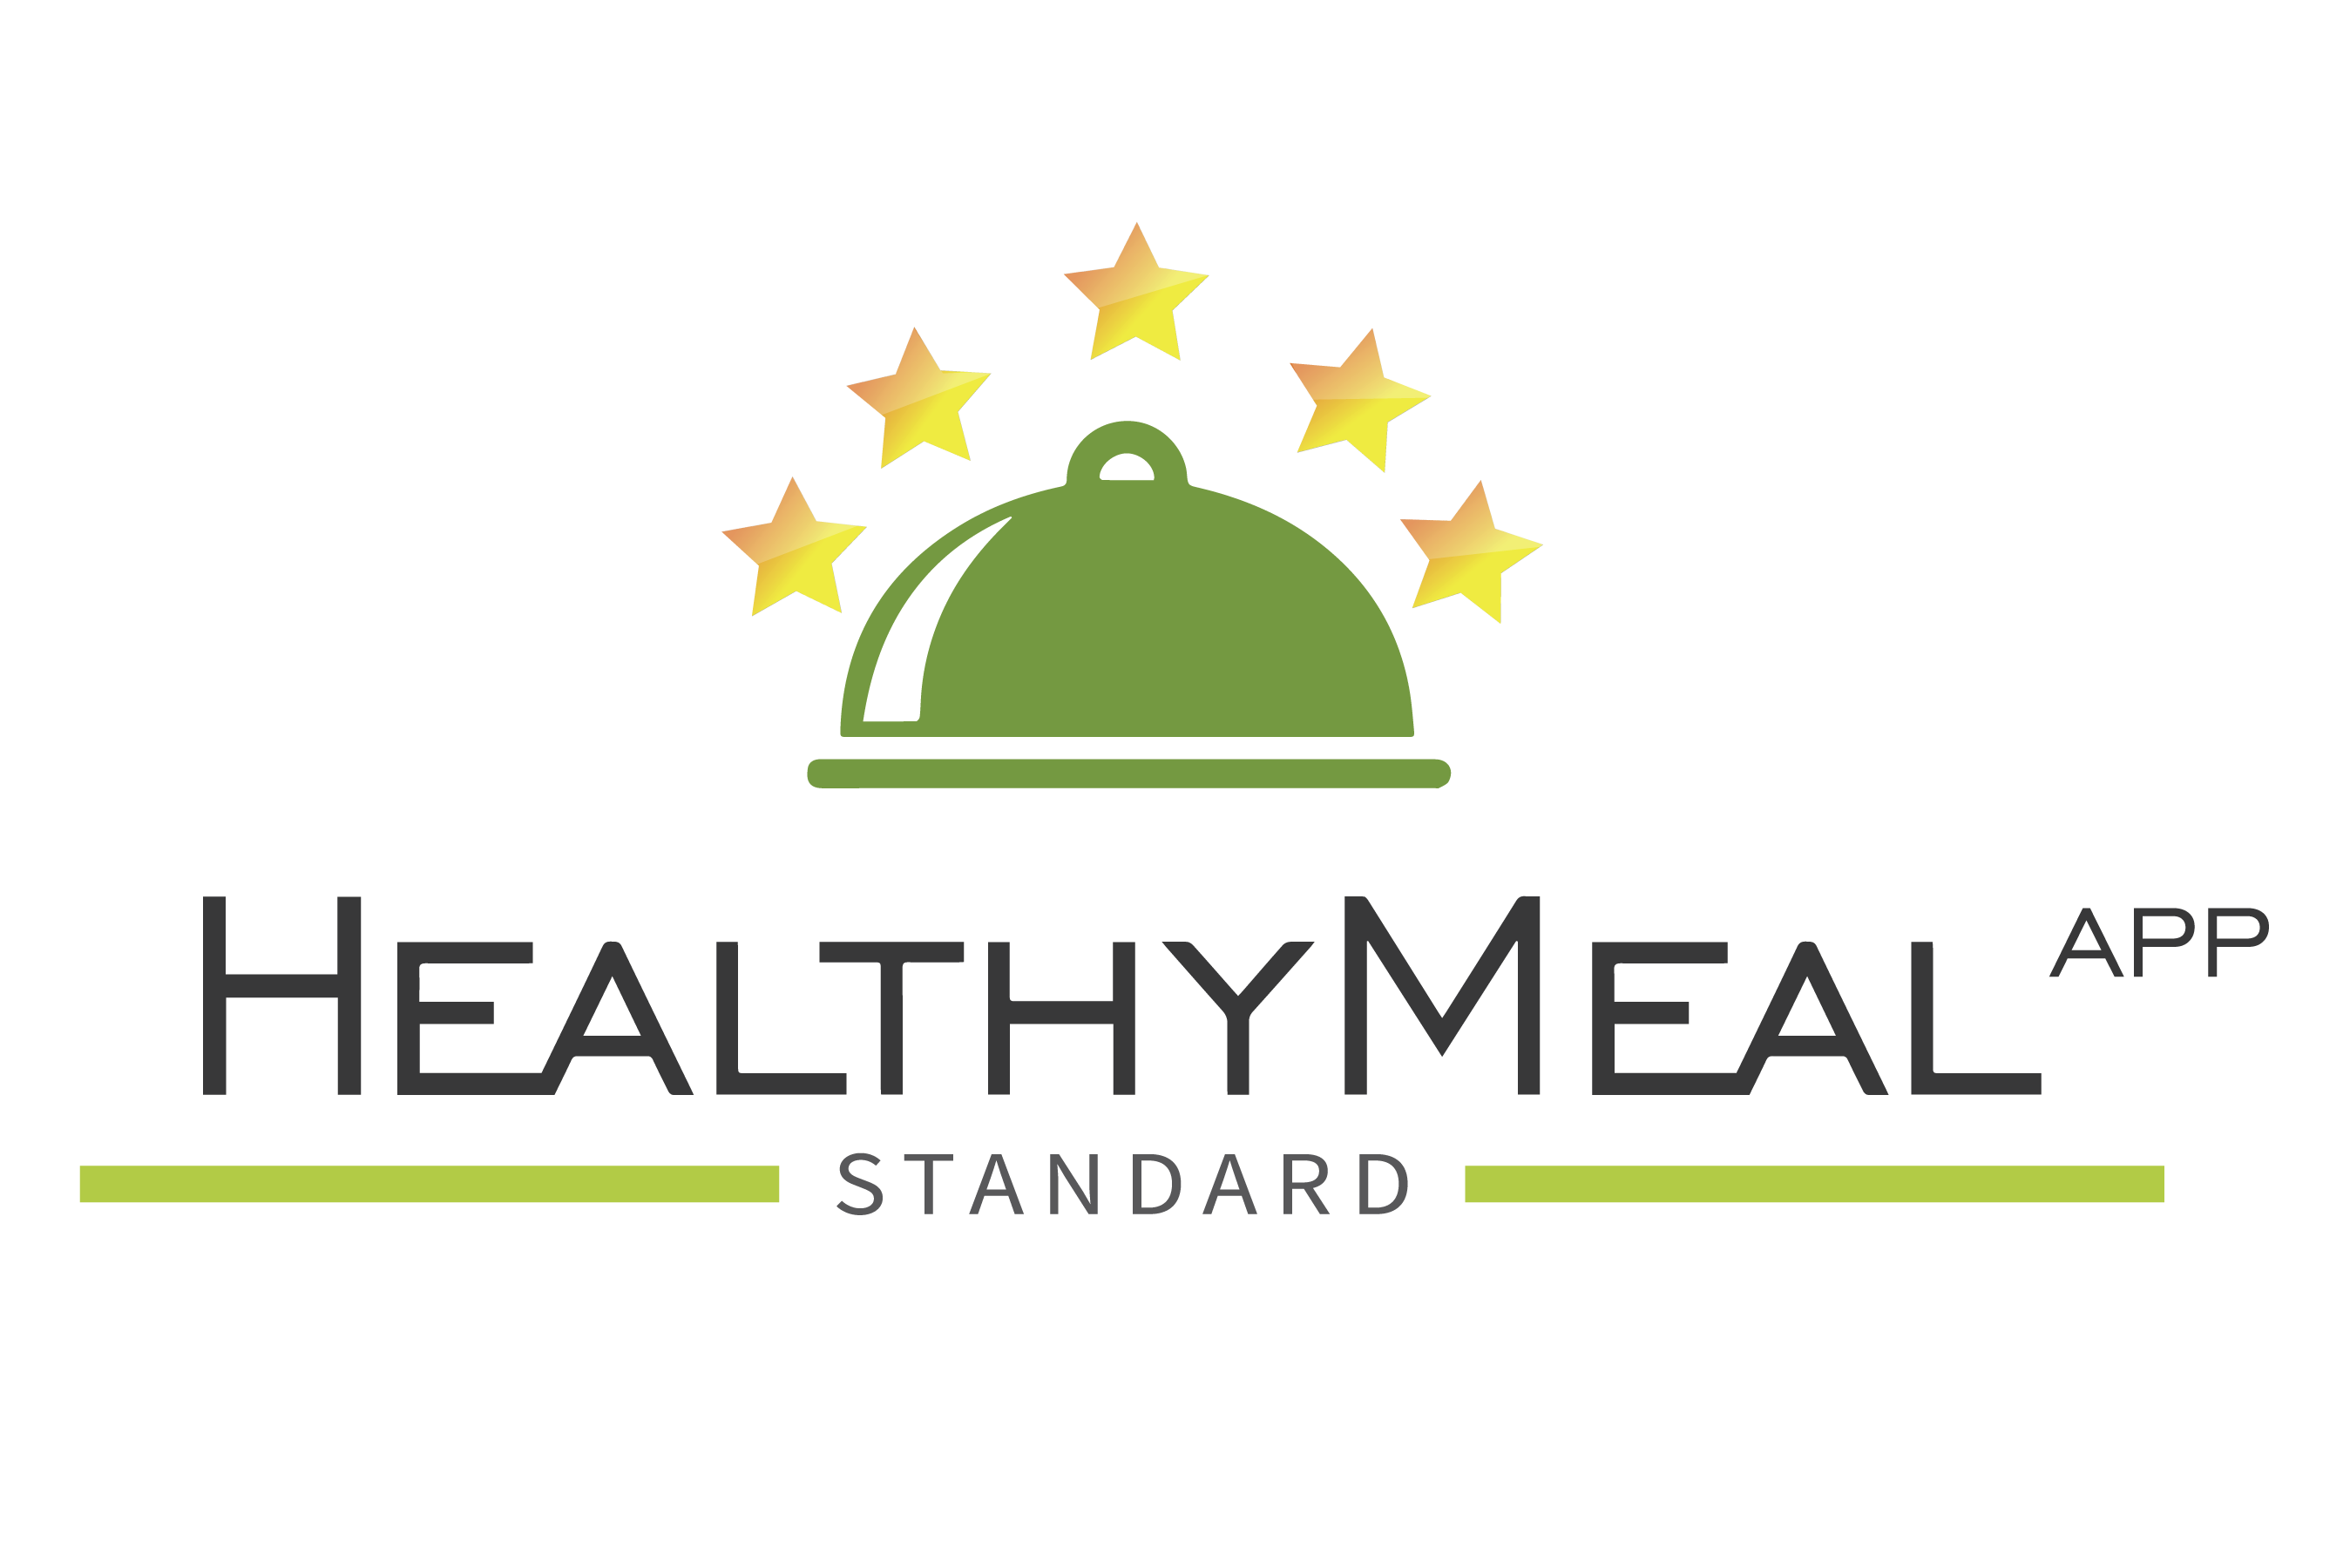 Healthy Meal Standard App logo